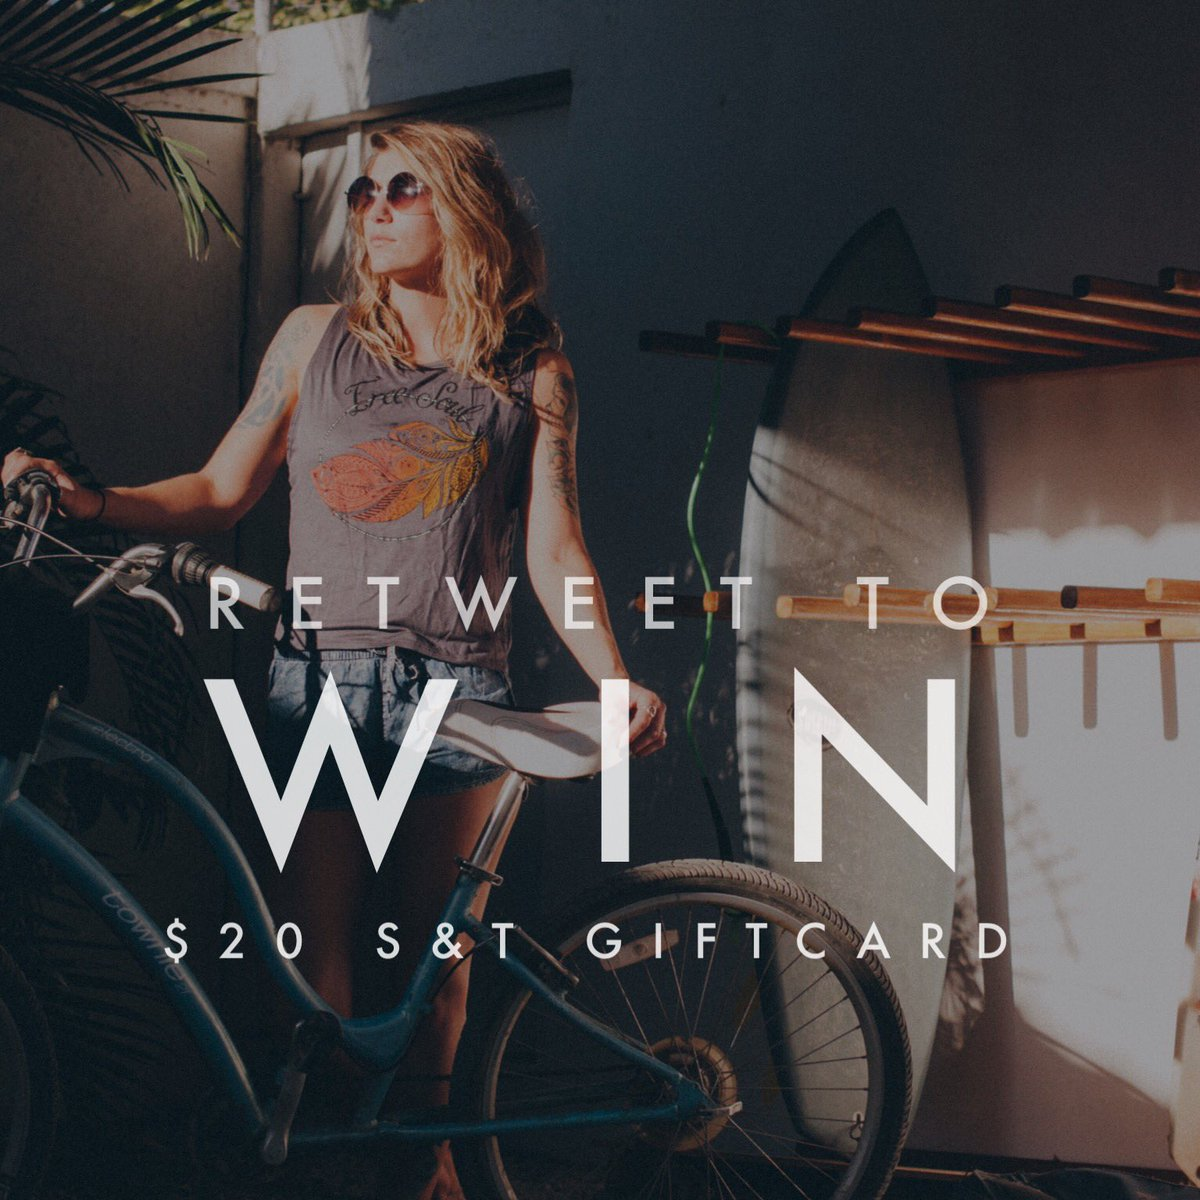 Who wants to win a $20 #sophieandtrey GIFT CARD? To enter just #retweet! https://t.co/Di3VXLsO1e https://t.co/BkQ9wKsvkf